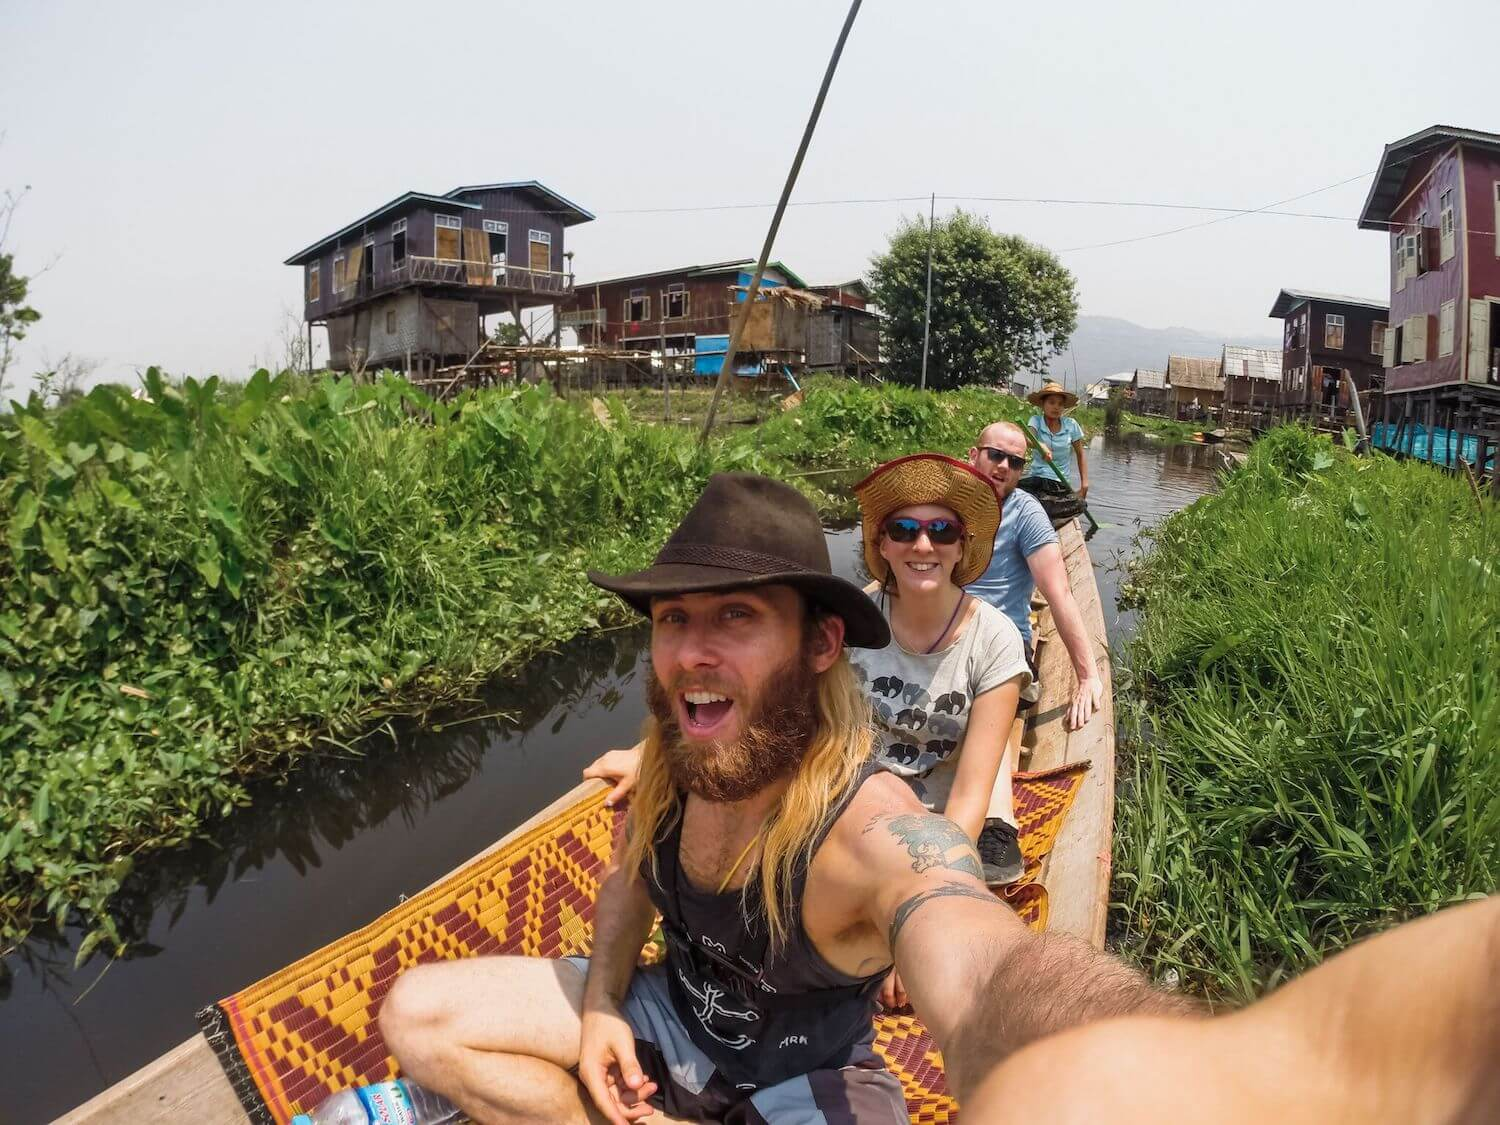 Best Myanmar Itinerary: Photo in a canoe in Inle Lake and the floating stilt houses. Photo taken by Ryan Brown of Lost Boy Memoirs with GoPro Hero 3+, edited in Adobe Lightroom.